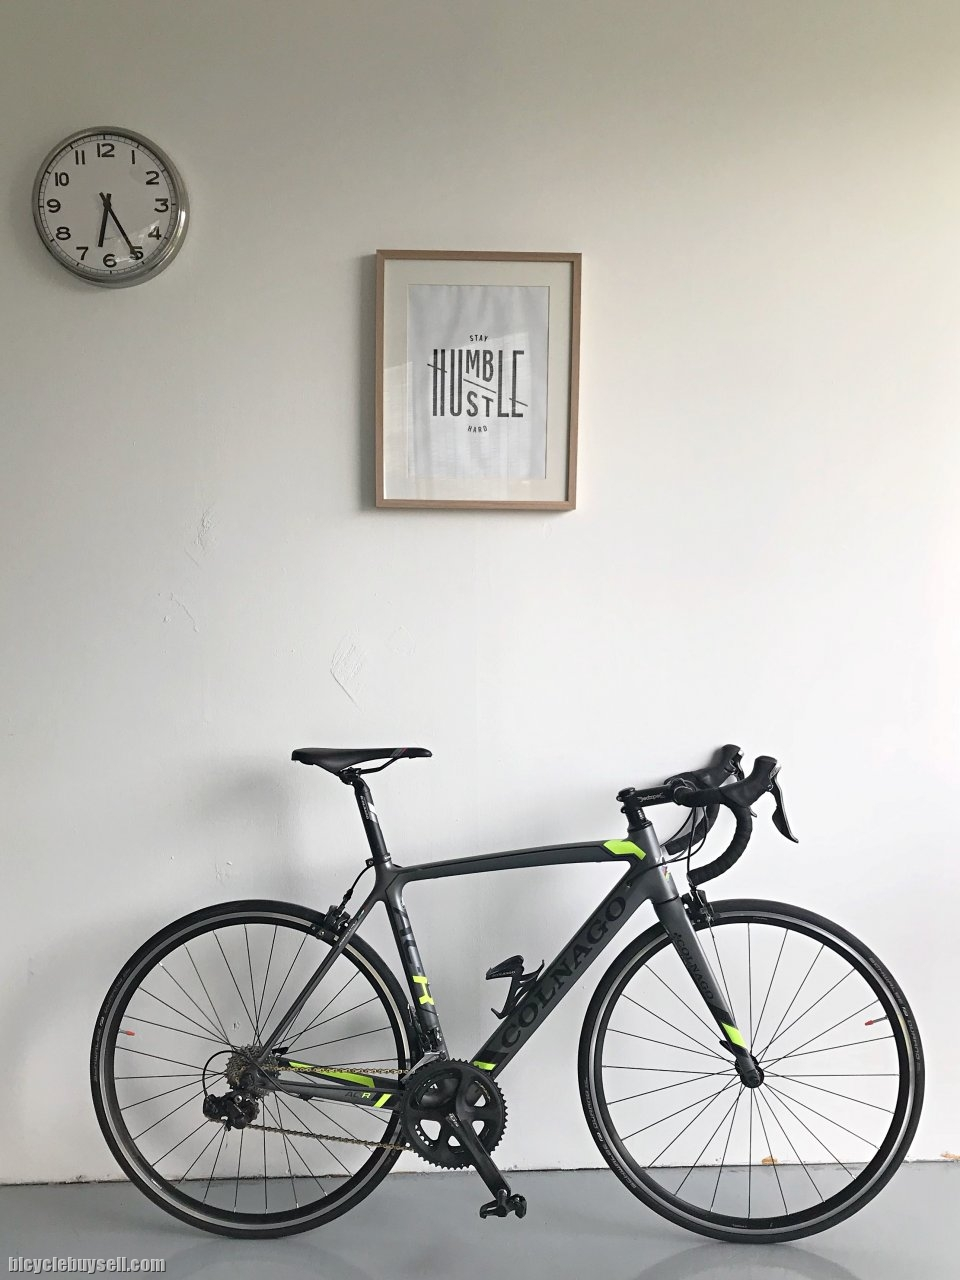 Colnago ACR 2015 Size 52 11SPEED Shimano105 Complete